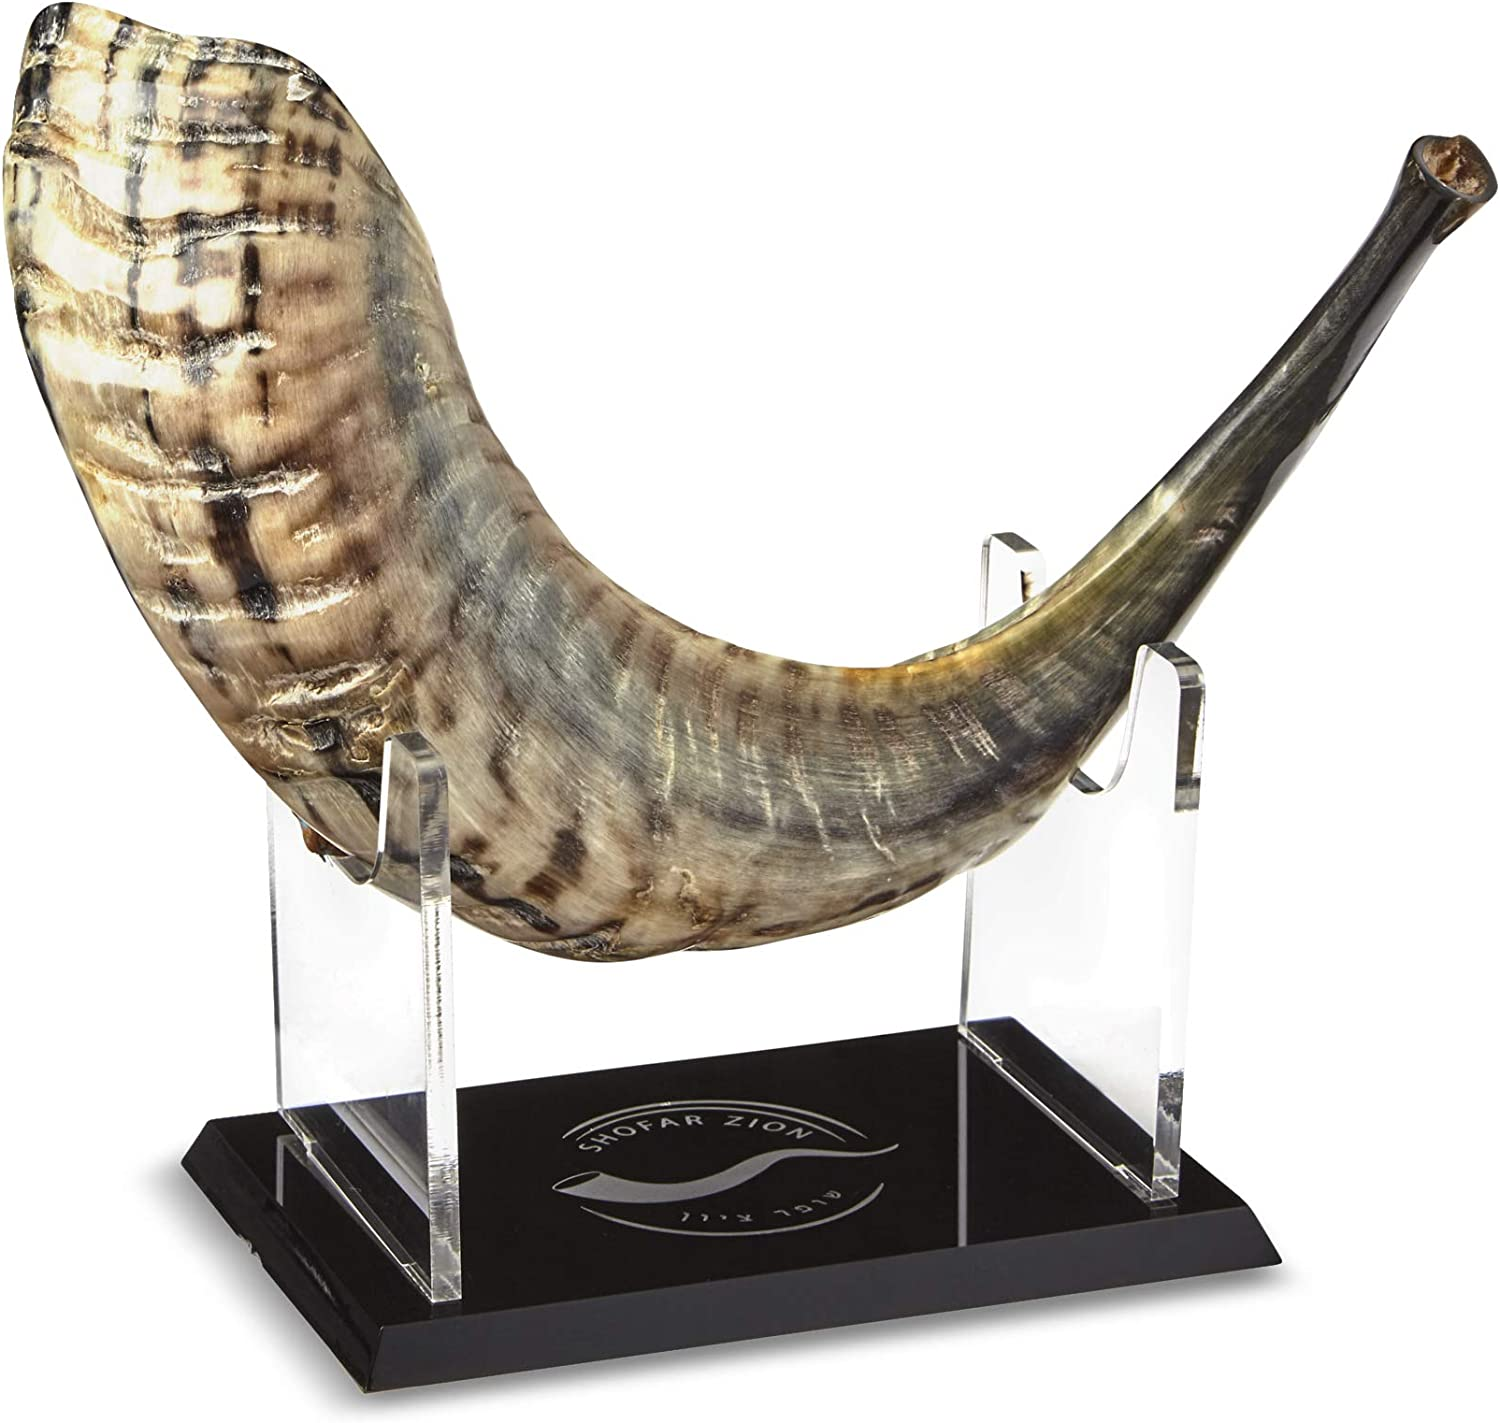 Shofar Zion Kosher ODORLESS Sales of SALE items from new SEAL limited product works Horn Rams Natural Smooth